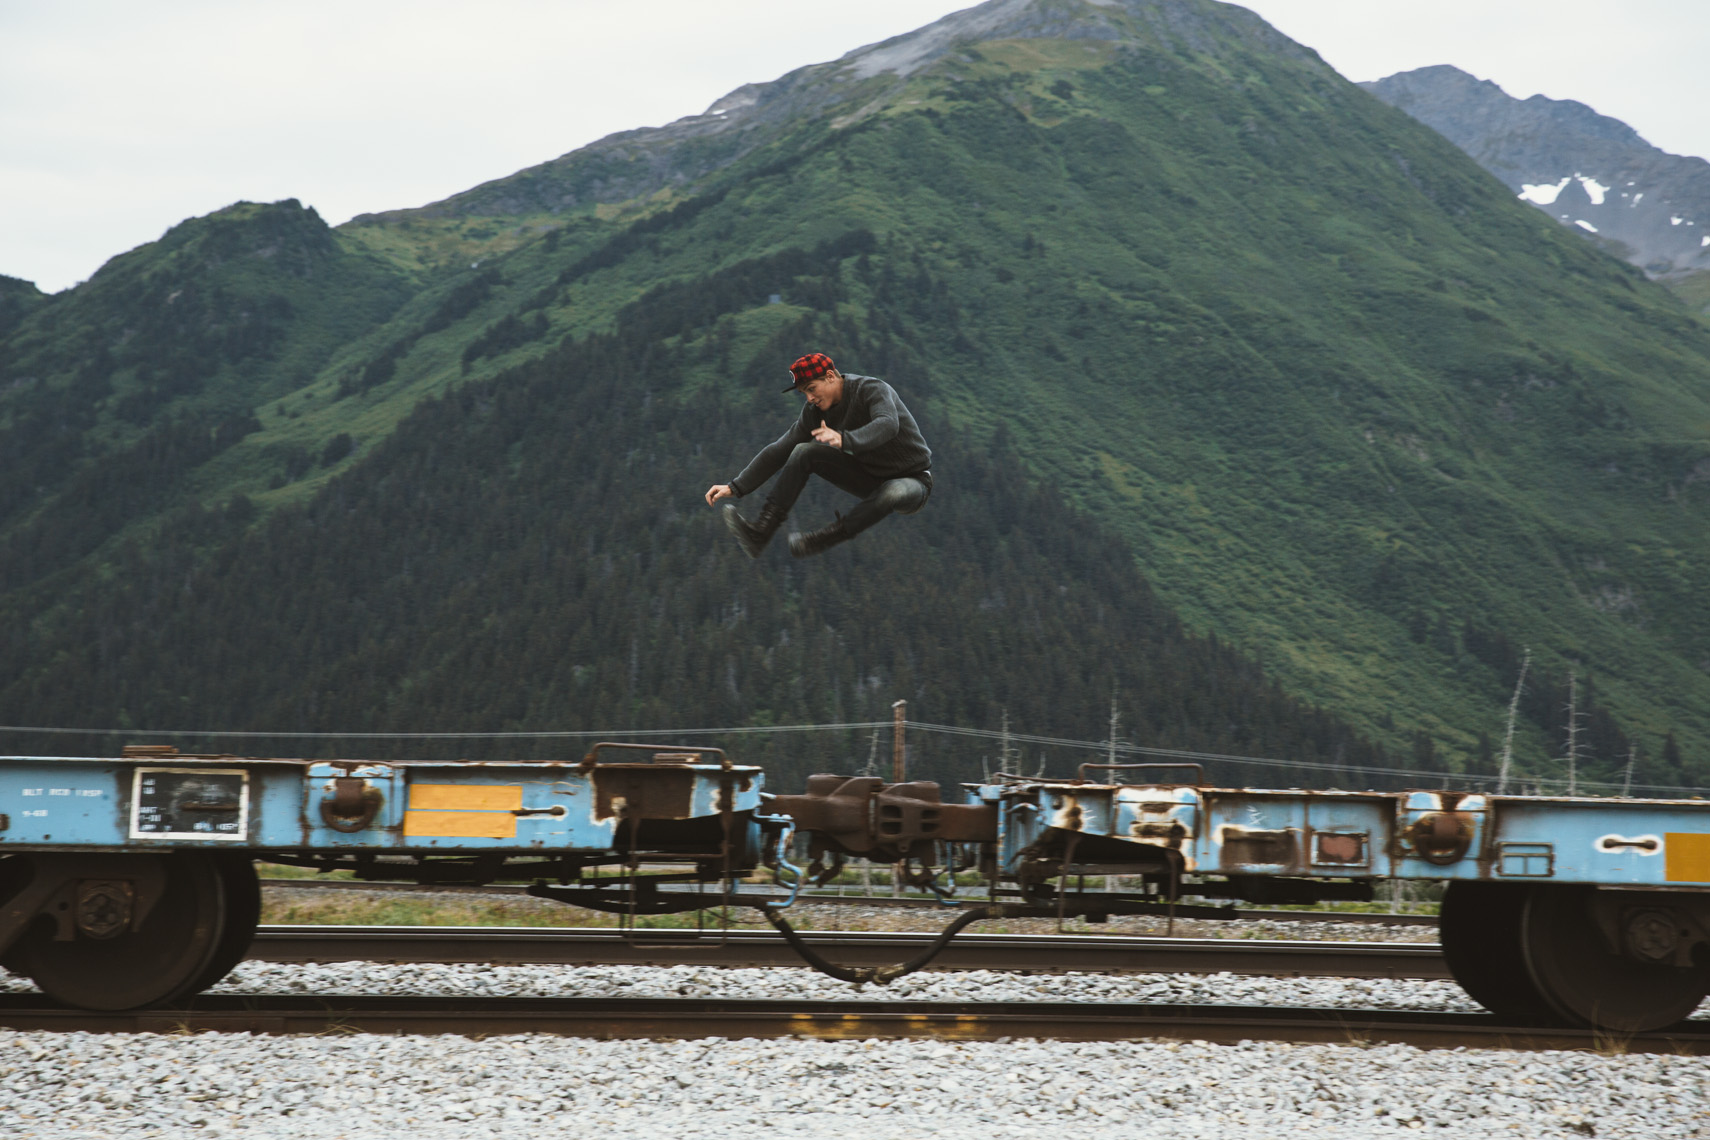 014_bf_power_31701Alaska_Outdoors_Landscape_Advertising